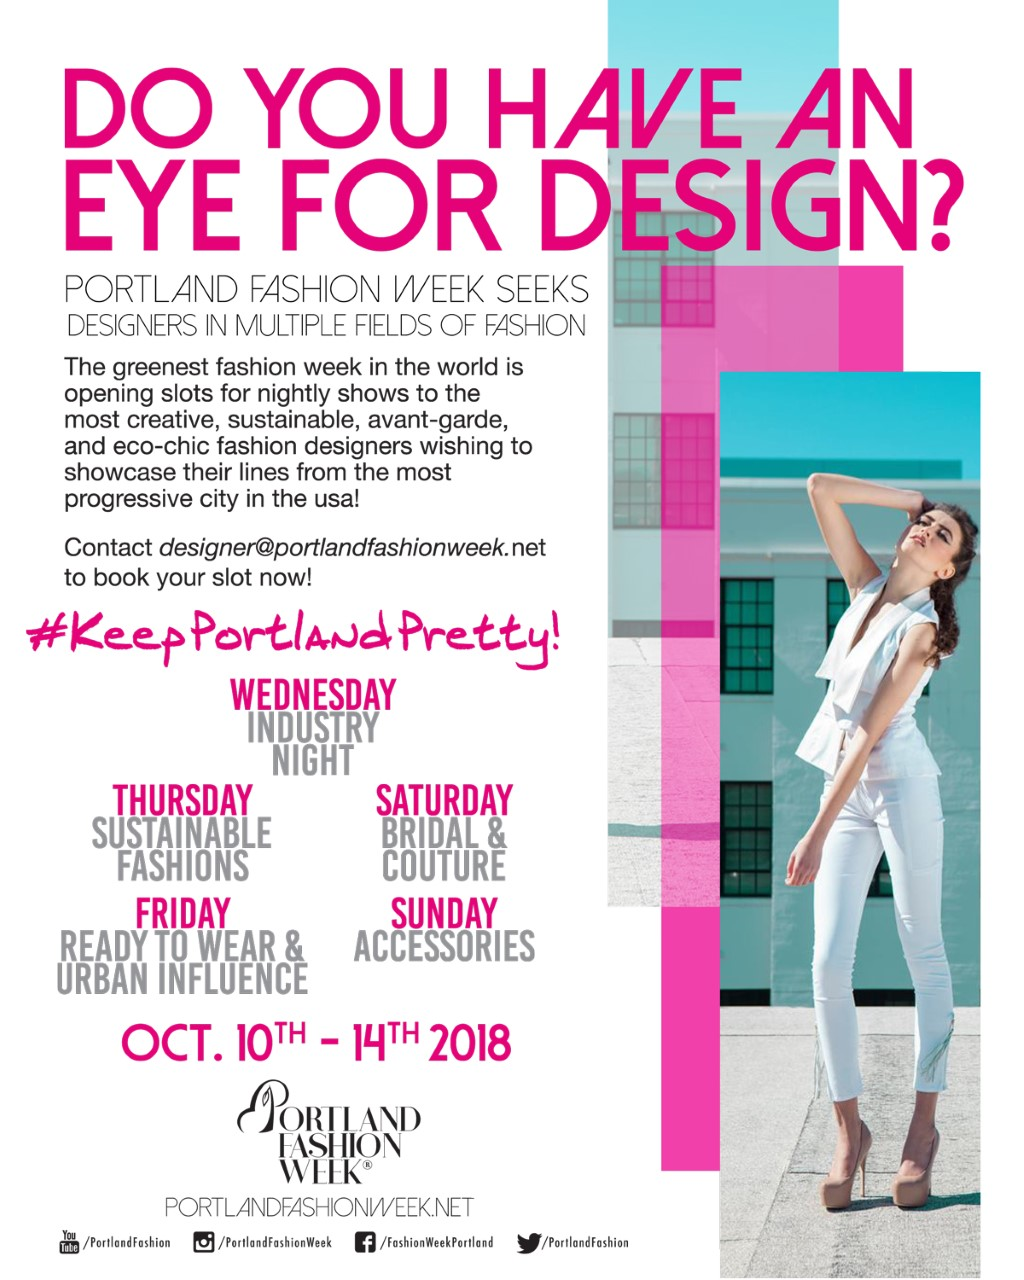 Portland Fashion Week 2018 Designer Roster is now OPEN - Interested Designers wishing to showcase their 2019 Collections are encouraged to apply. Designer@PortlandFashionWeek.net to learn more.